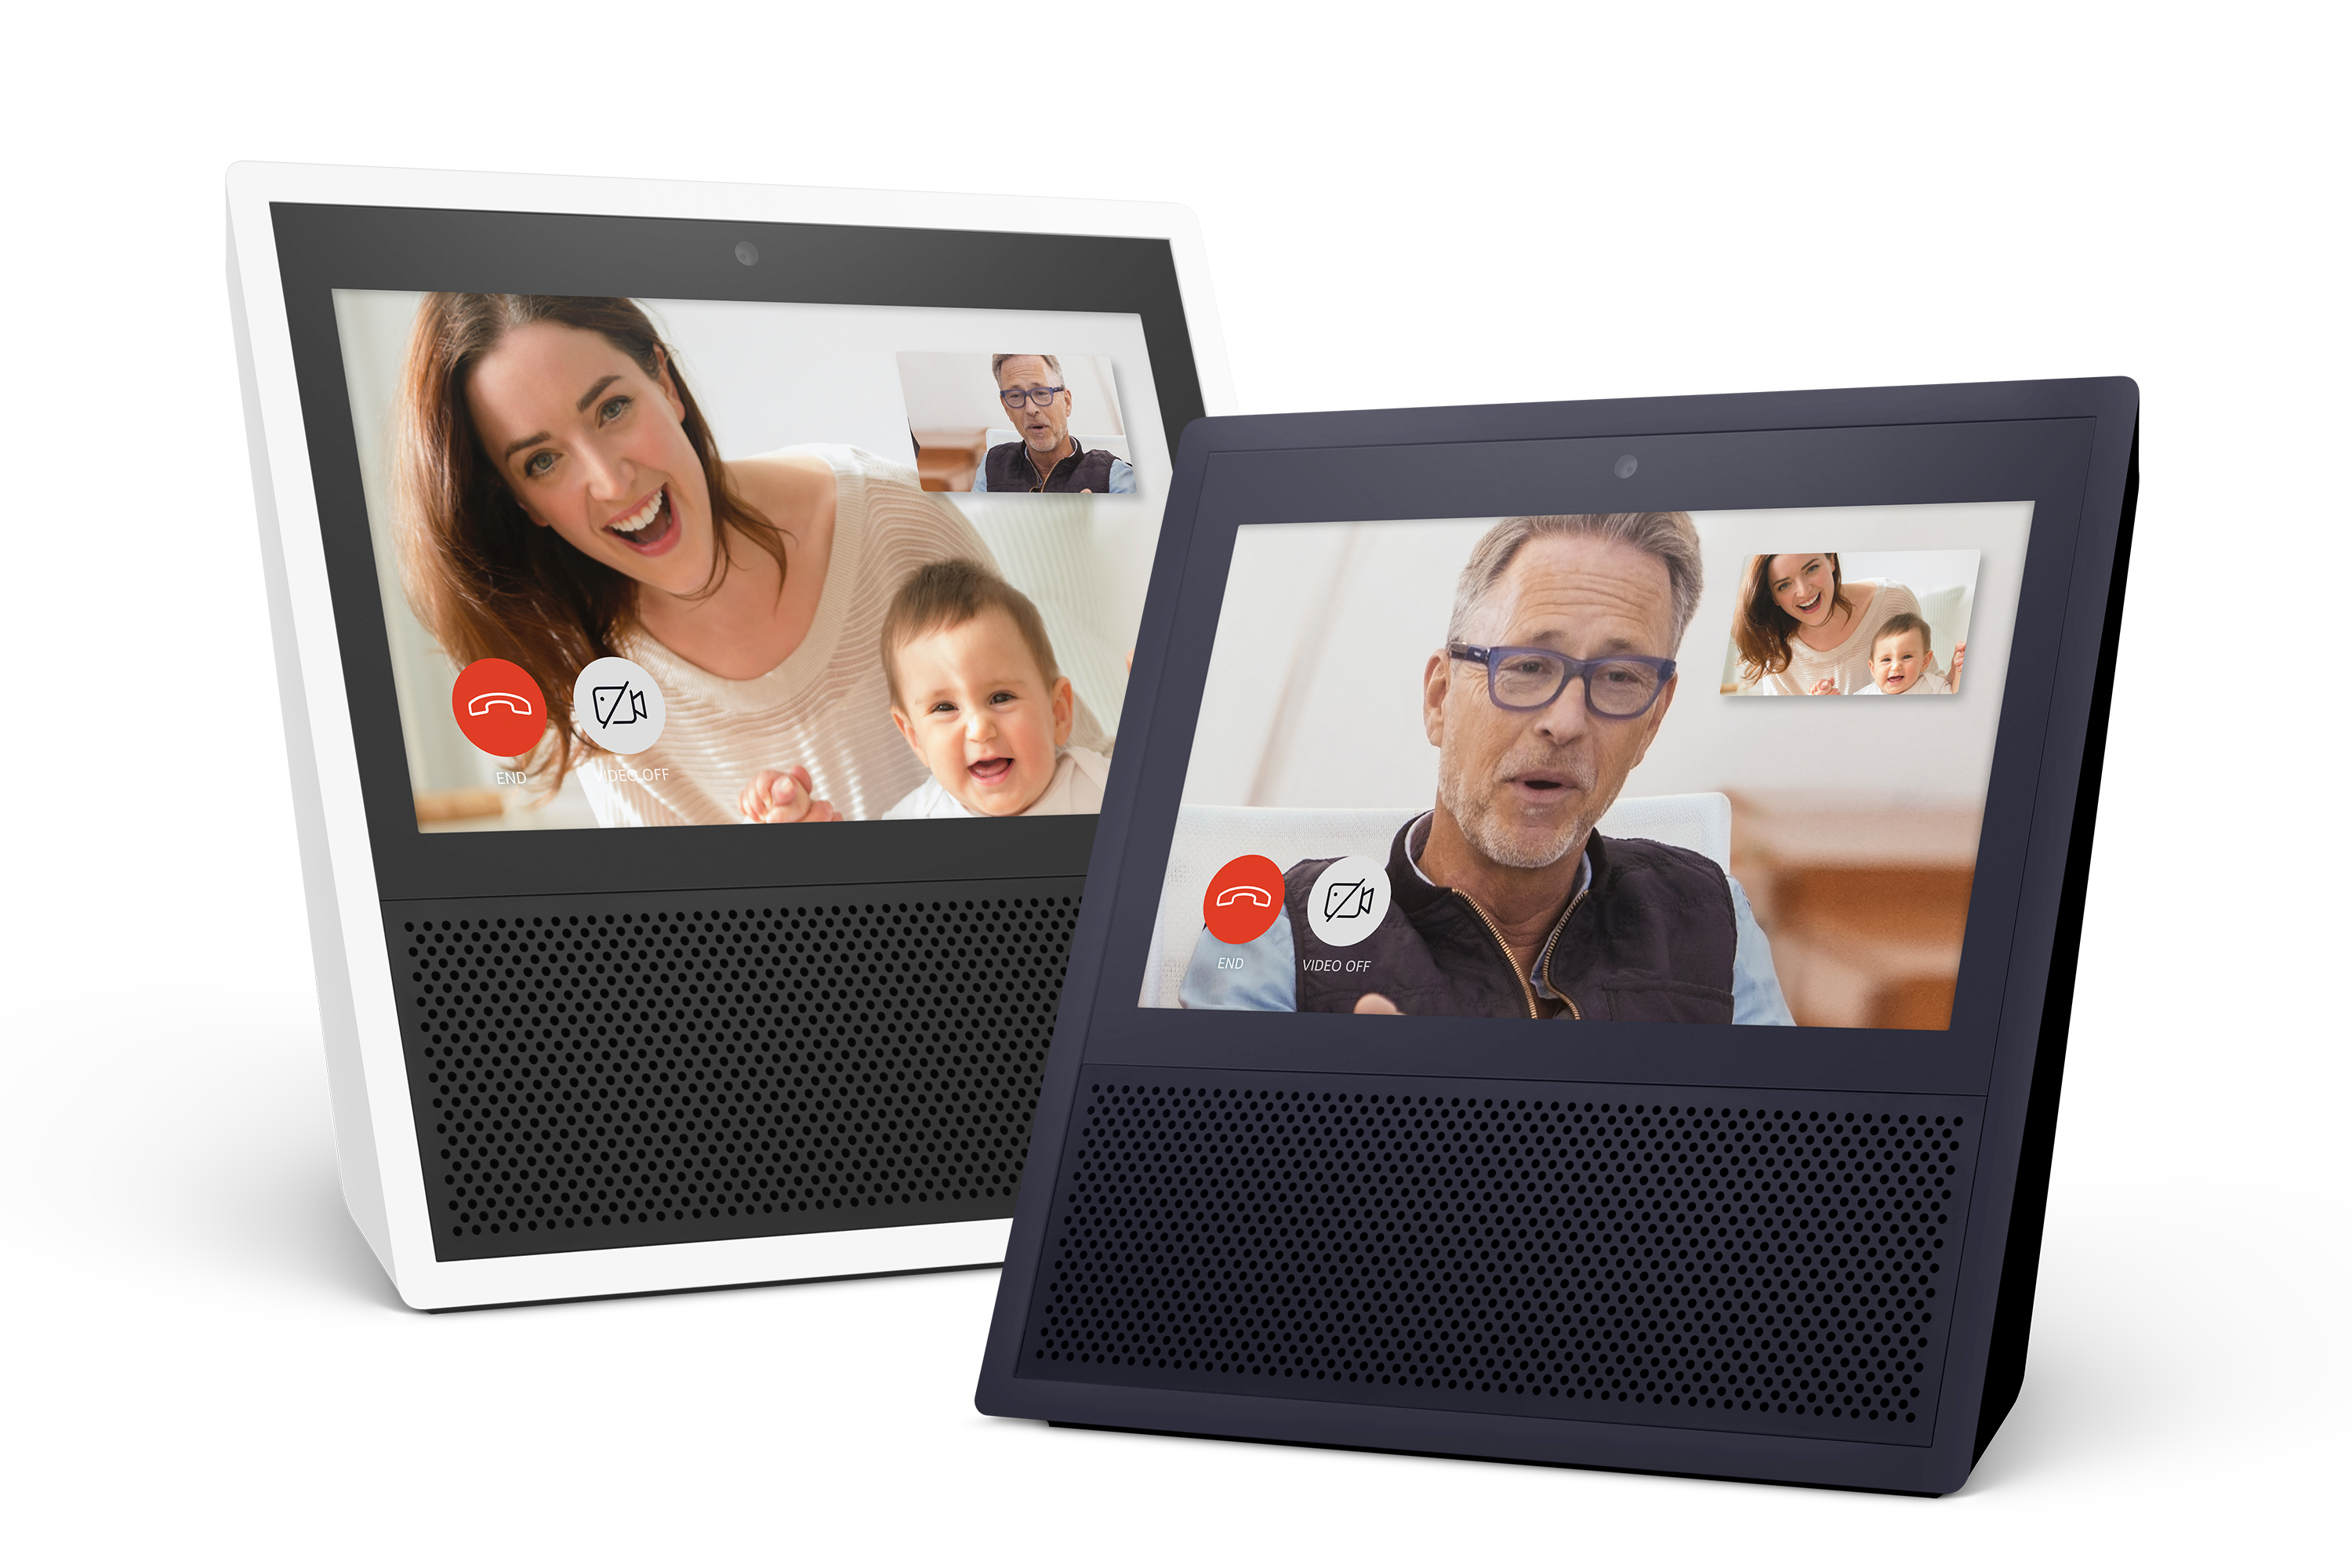 IC Realtime Video Surveillance Cameras Integrate with Amazon Echo Show